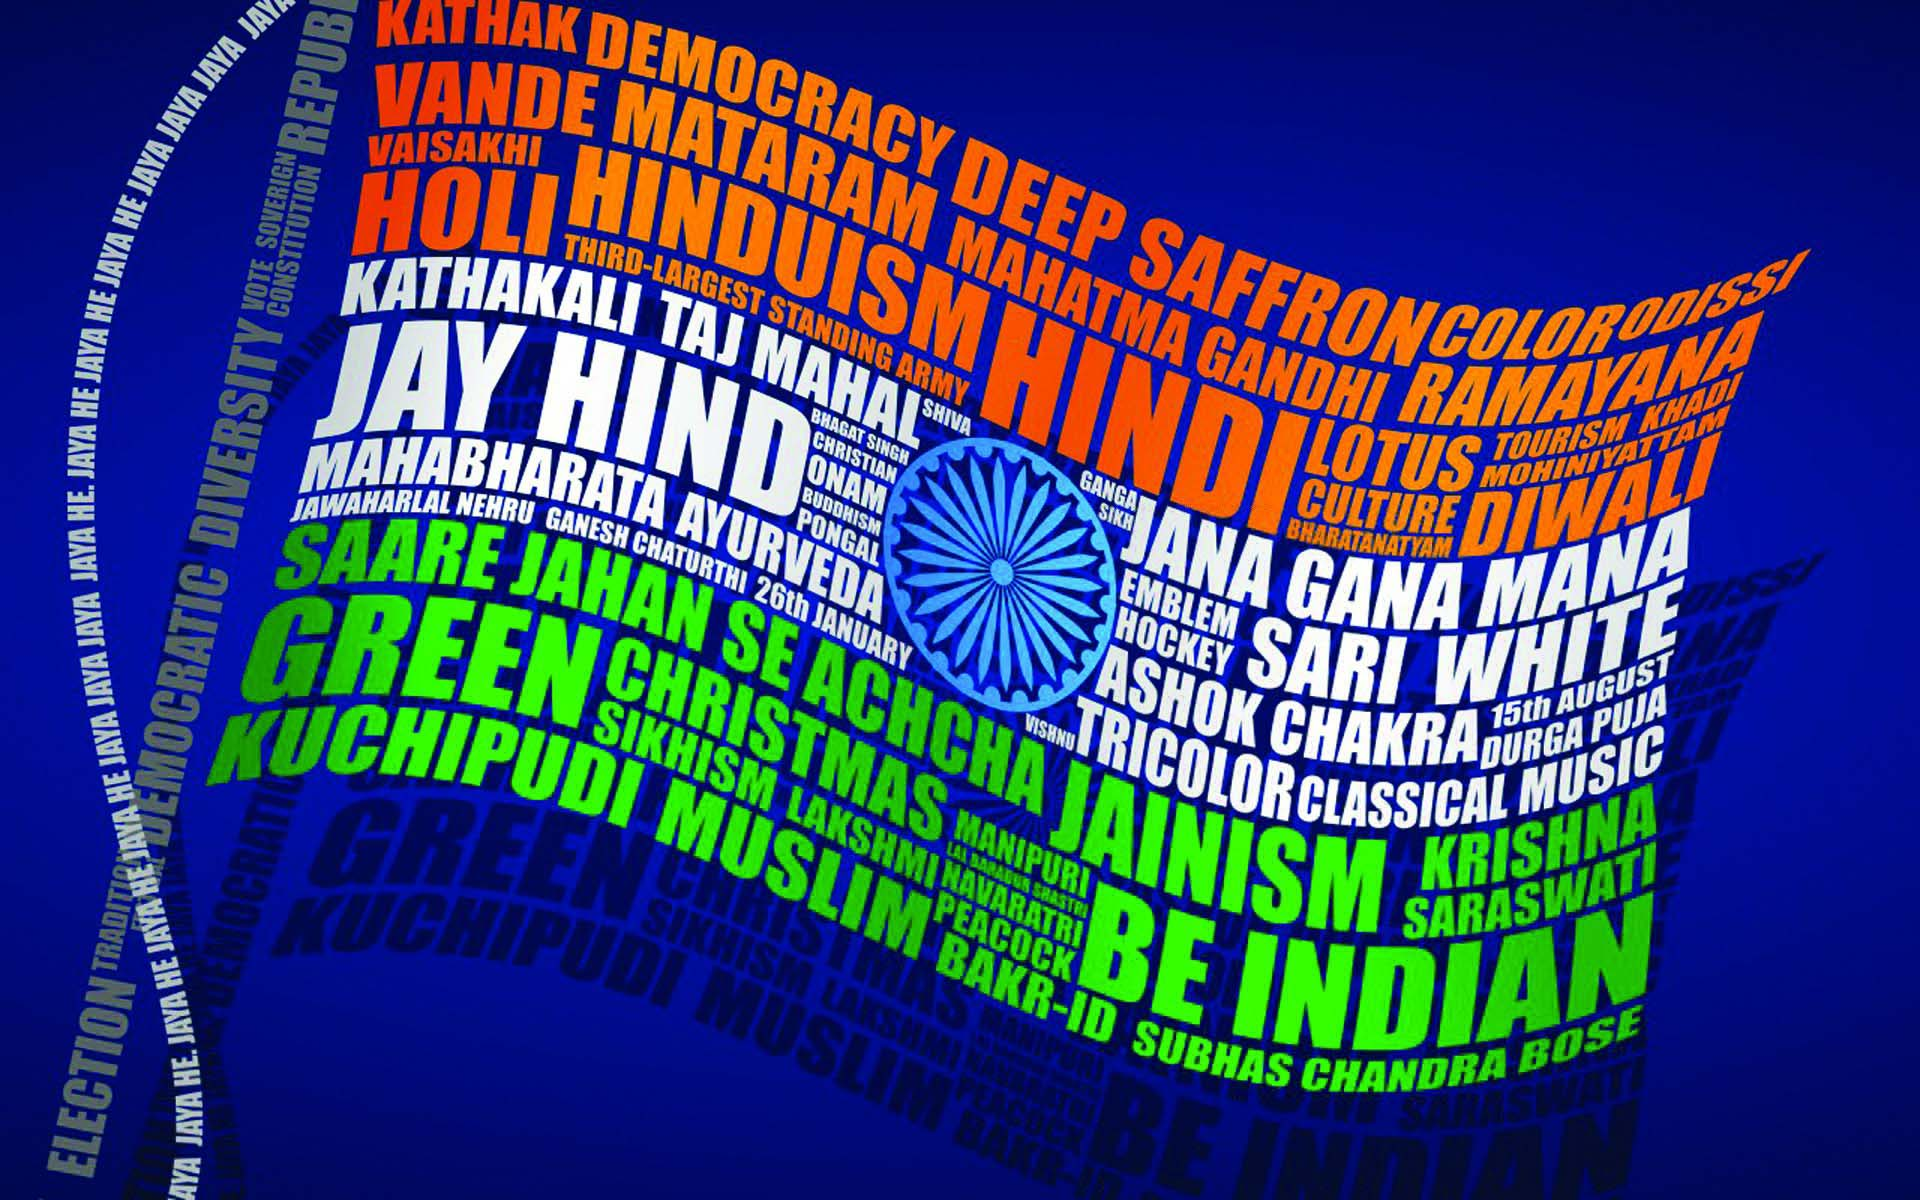 For Indian Flag Hd Animation: Indian Flag Wallpaper Animation For India Independence Day